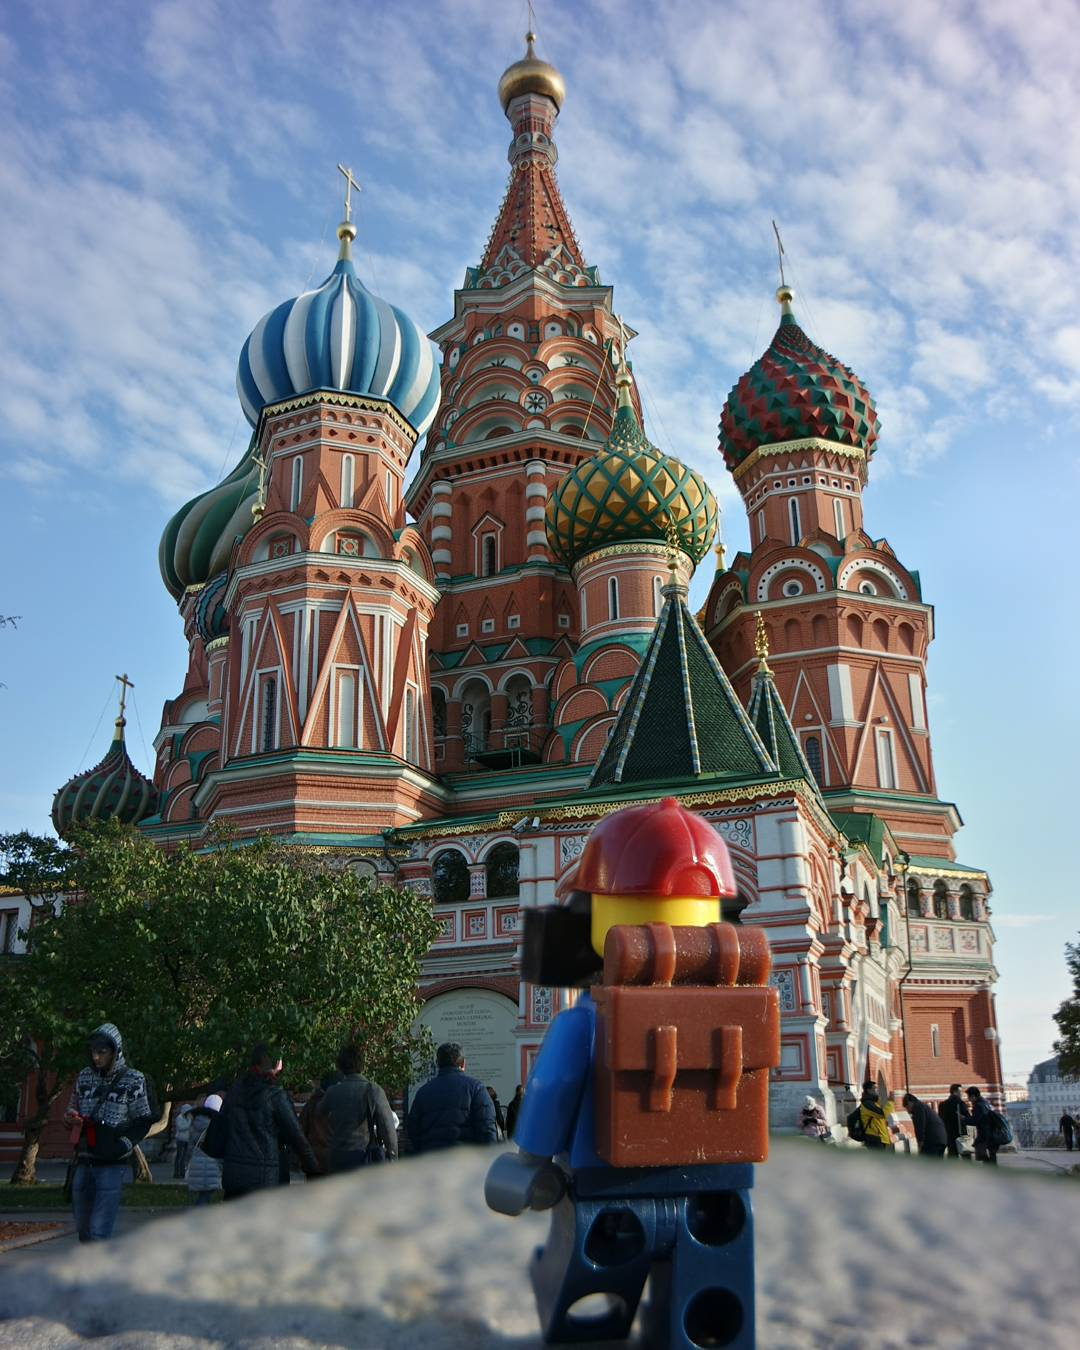 Found the Saint Basil's Cathedral in Moscow